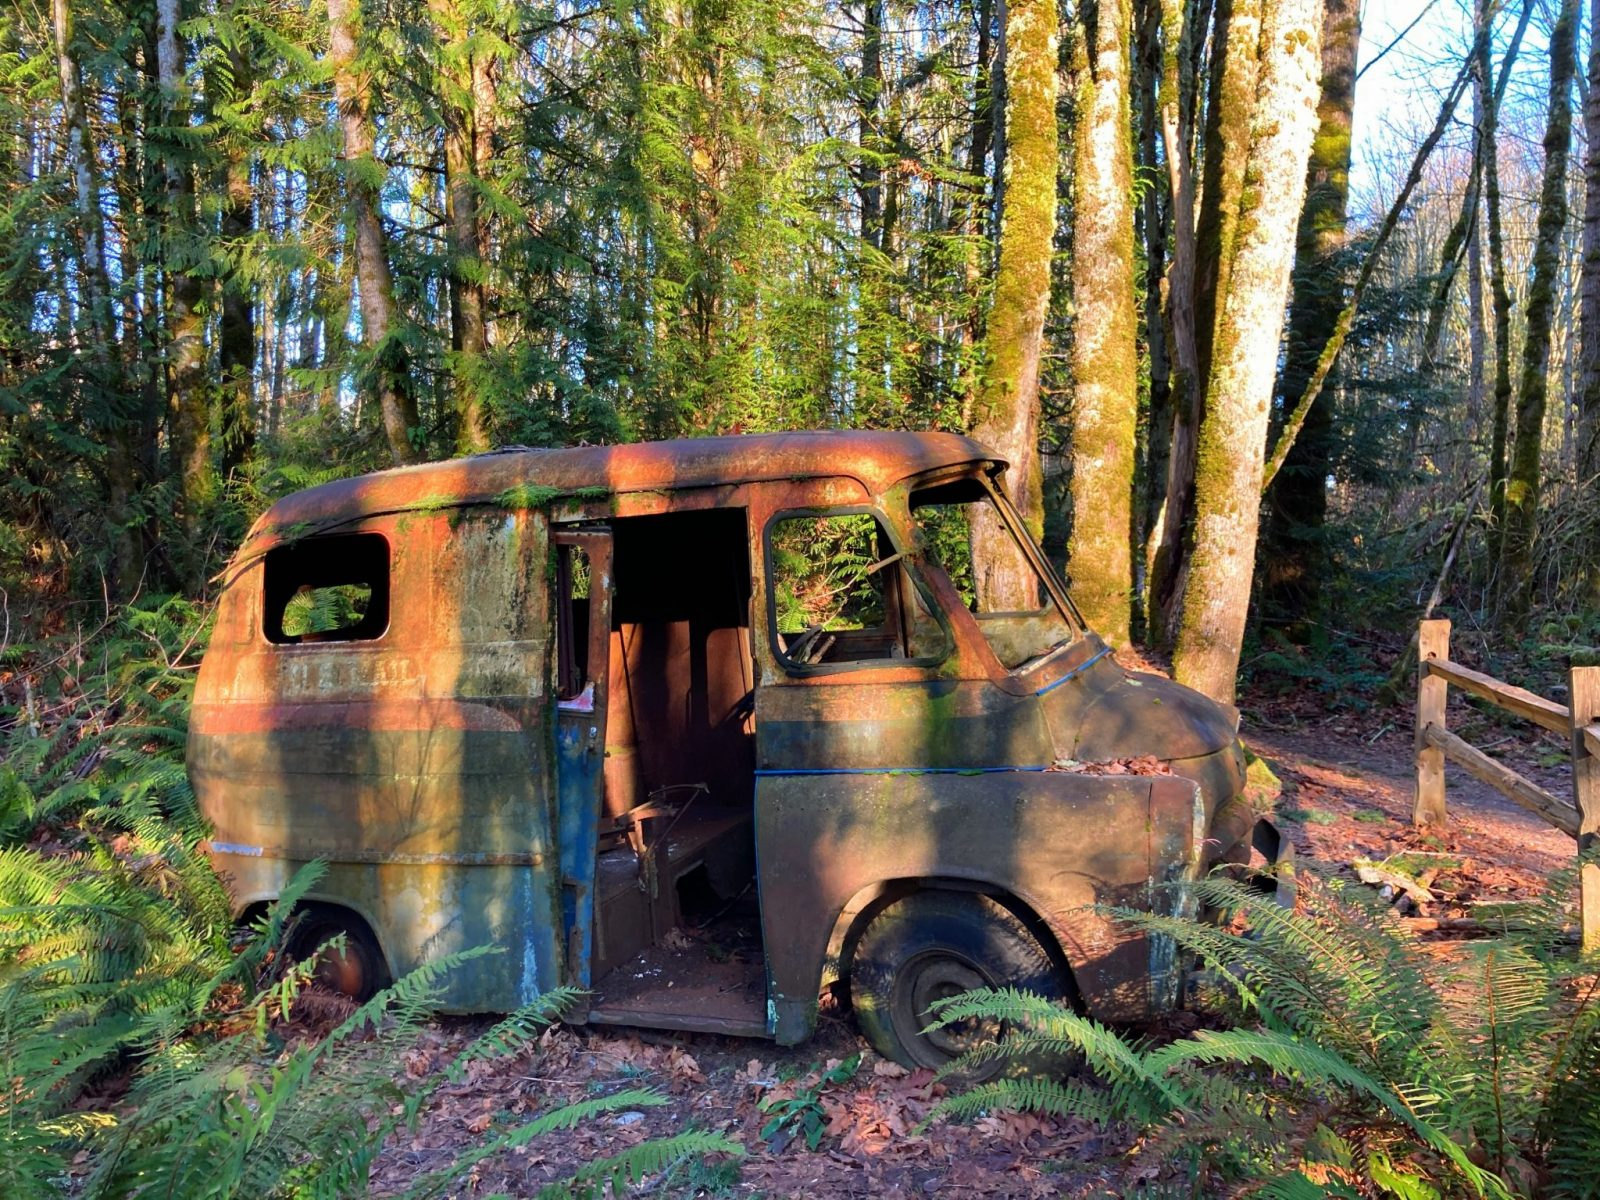 An old, rusty and moss covered truck in the forest. The windows and doors of the truck are gone and it is surrounded by ferns and forest